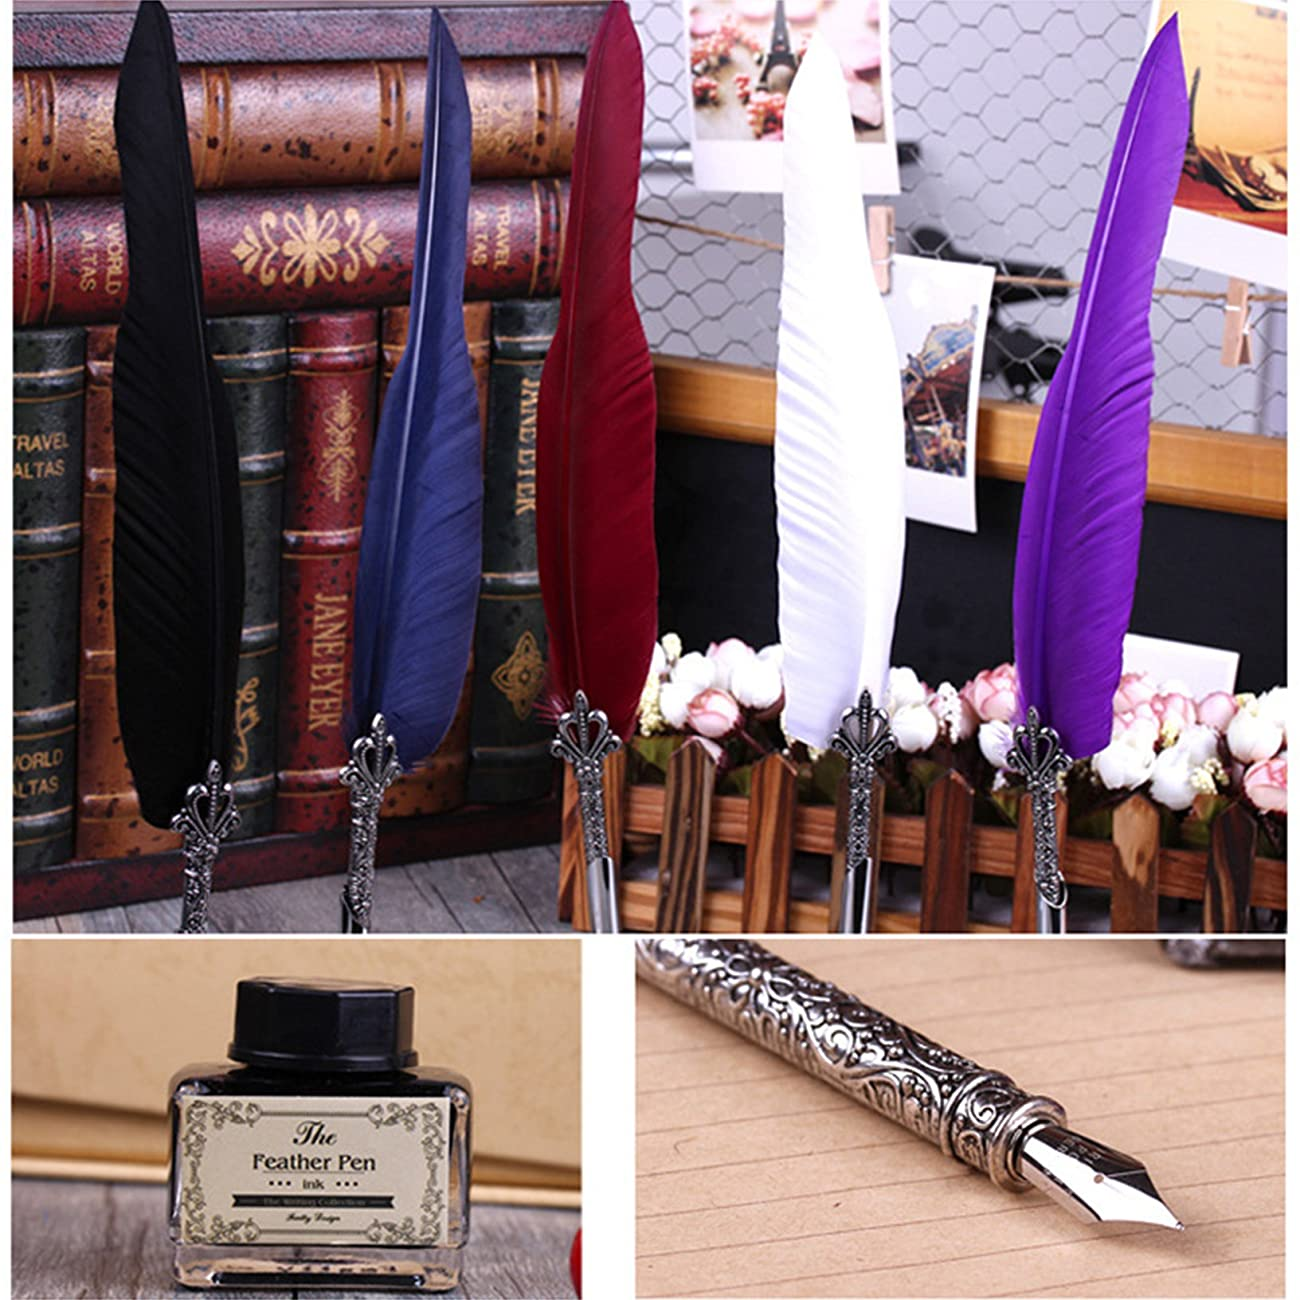 Toyofmine Antique Feather Pen Set (5 Extra Calligraphy Nibs,1 Feather Pen,1 Seal Wax Stick and Stamp with 1 Ink Pot , 1 Pen Holder and 1 Box) 4